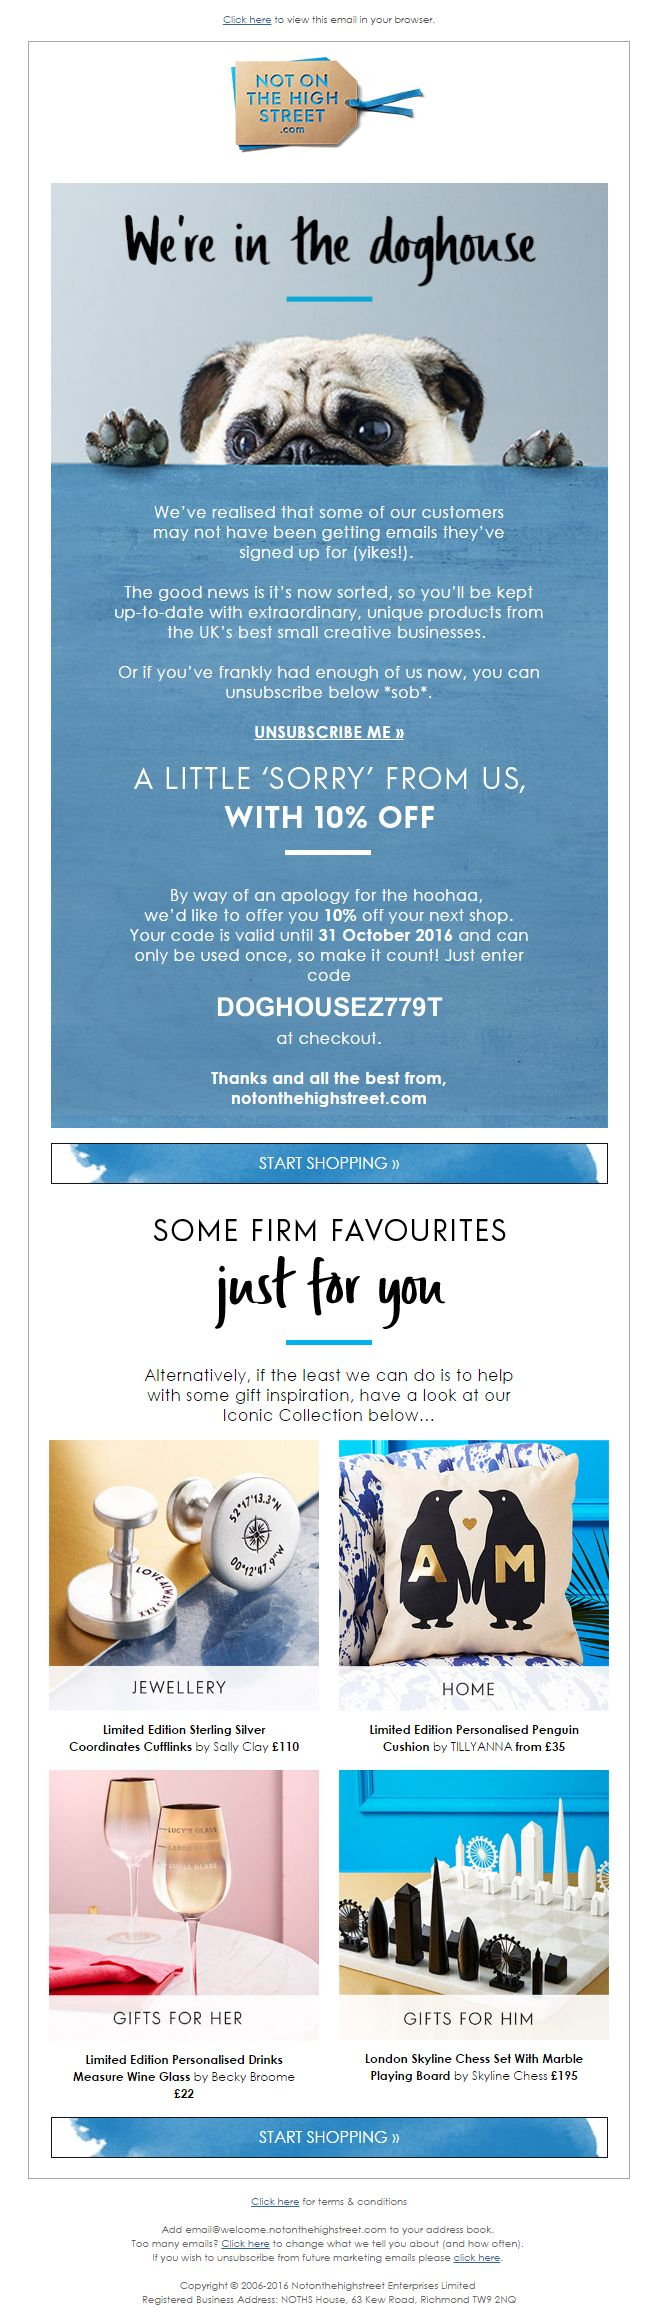 25 unique apology gifts ideas on pinterest ways to say sorry apology email from not on the highstreet including 10 off discount code emailmarketing ccuart Choice Image